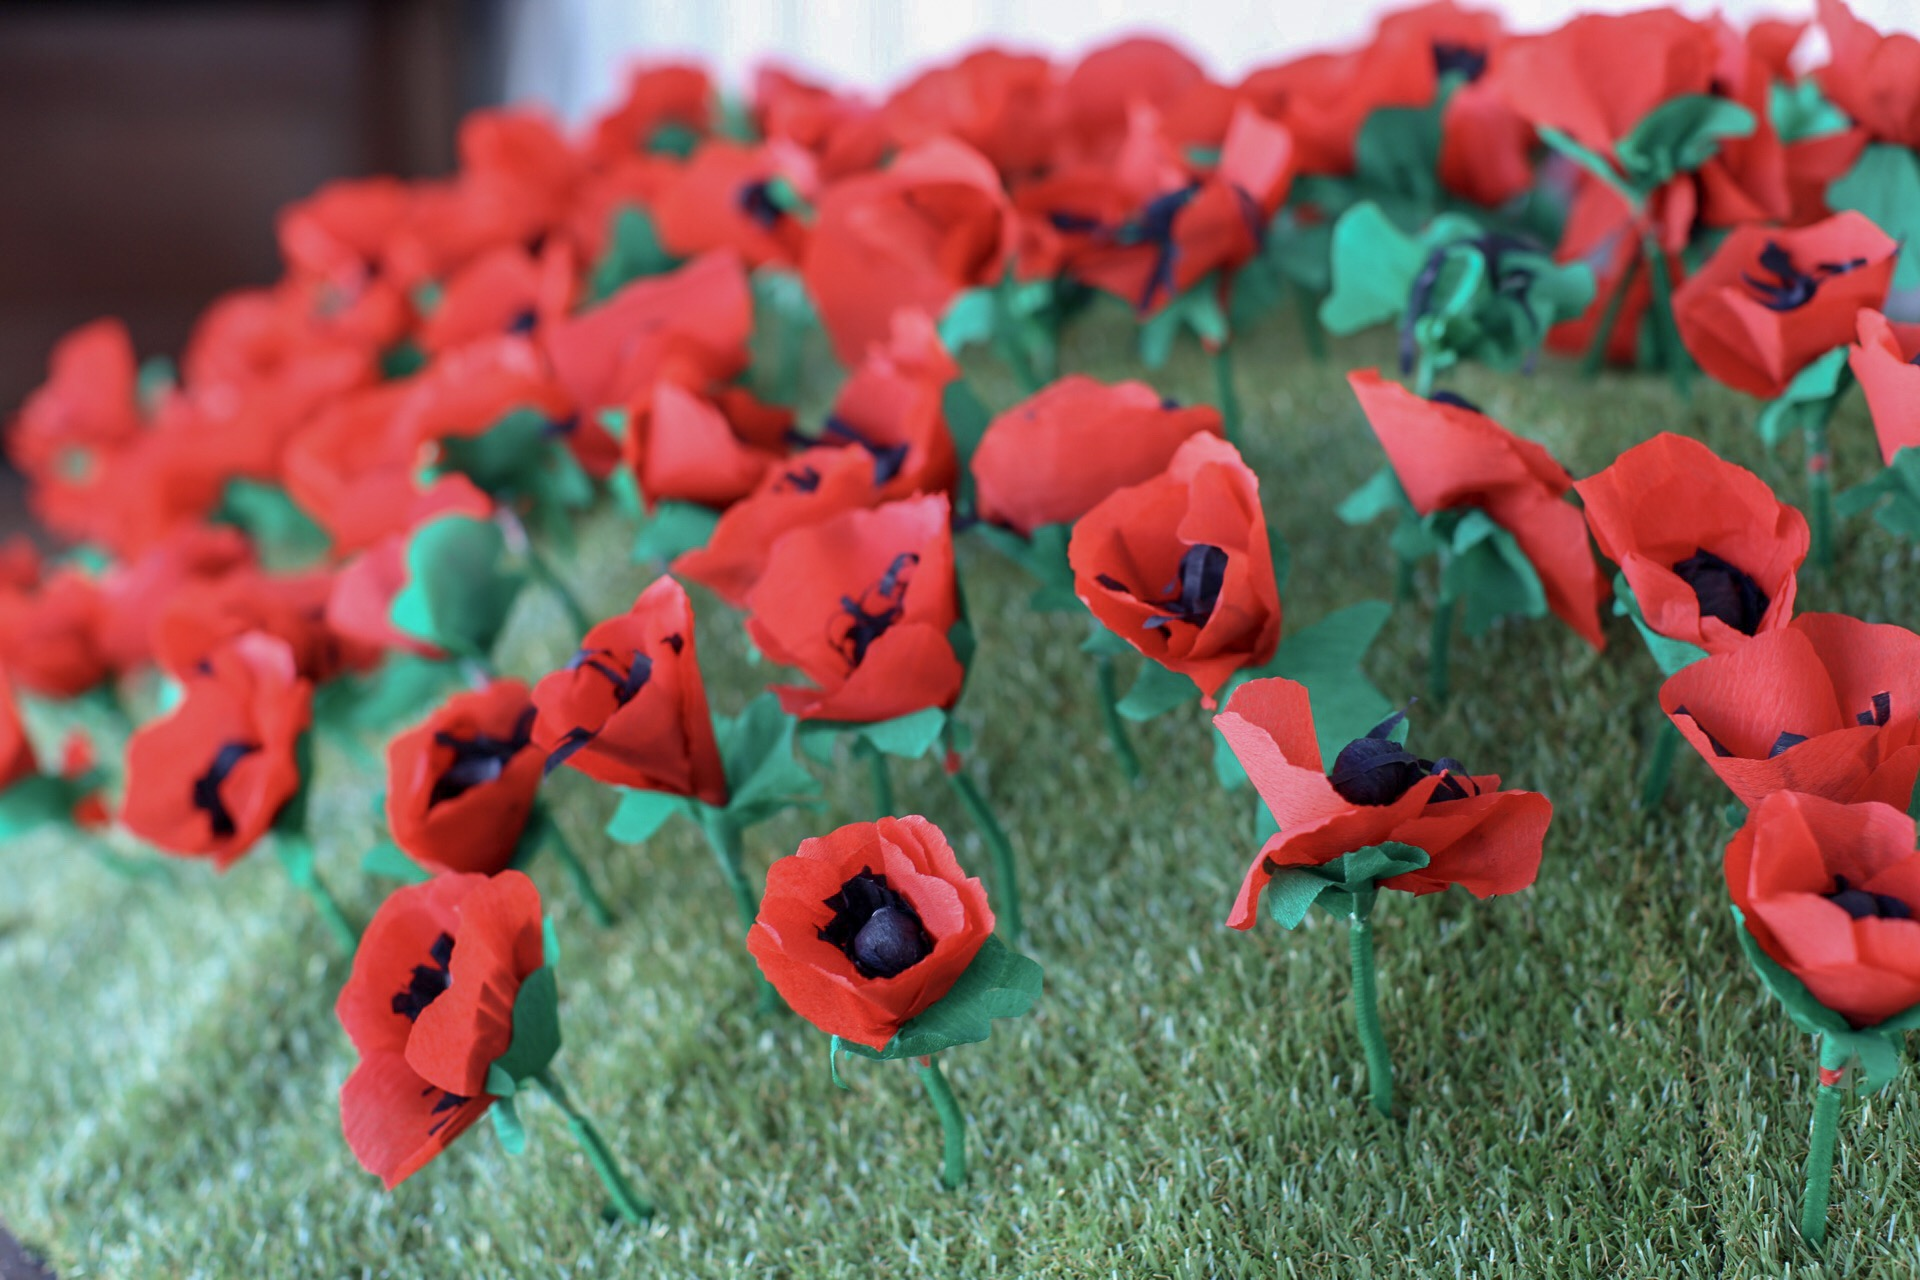 ANZAC Poppy Remembrance Field in collaboration with  The Torpedo Bay Navy Museum .  Over 200 poppies were made by students at The Academy for Gifted Education and Takapuna locals who dropped by our paper poppy making workshops in the blue container.